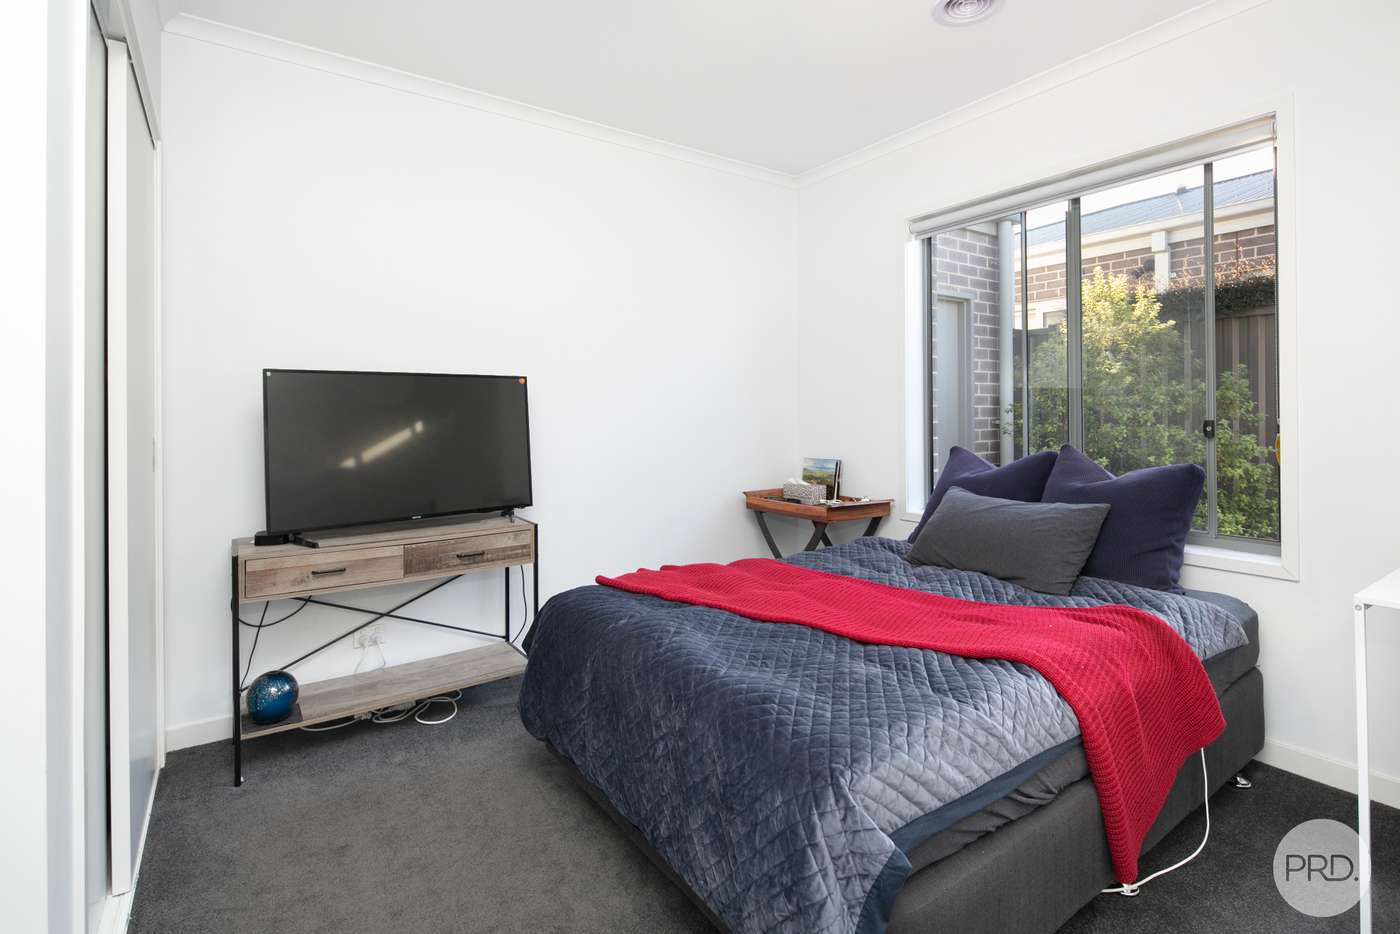 Sixth view of Homely house listing, 17 Gitsham Street, Alfredton VIC 3350